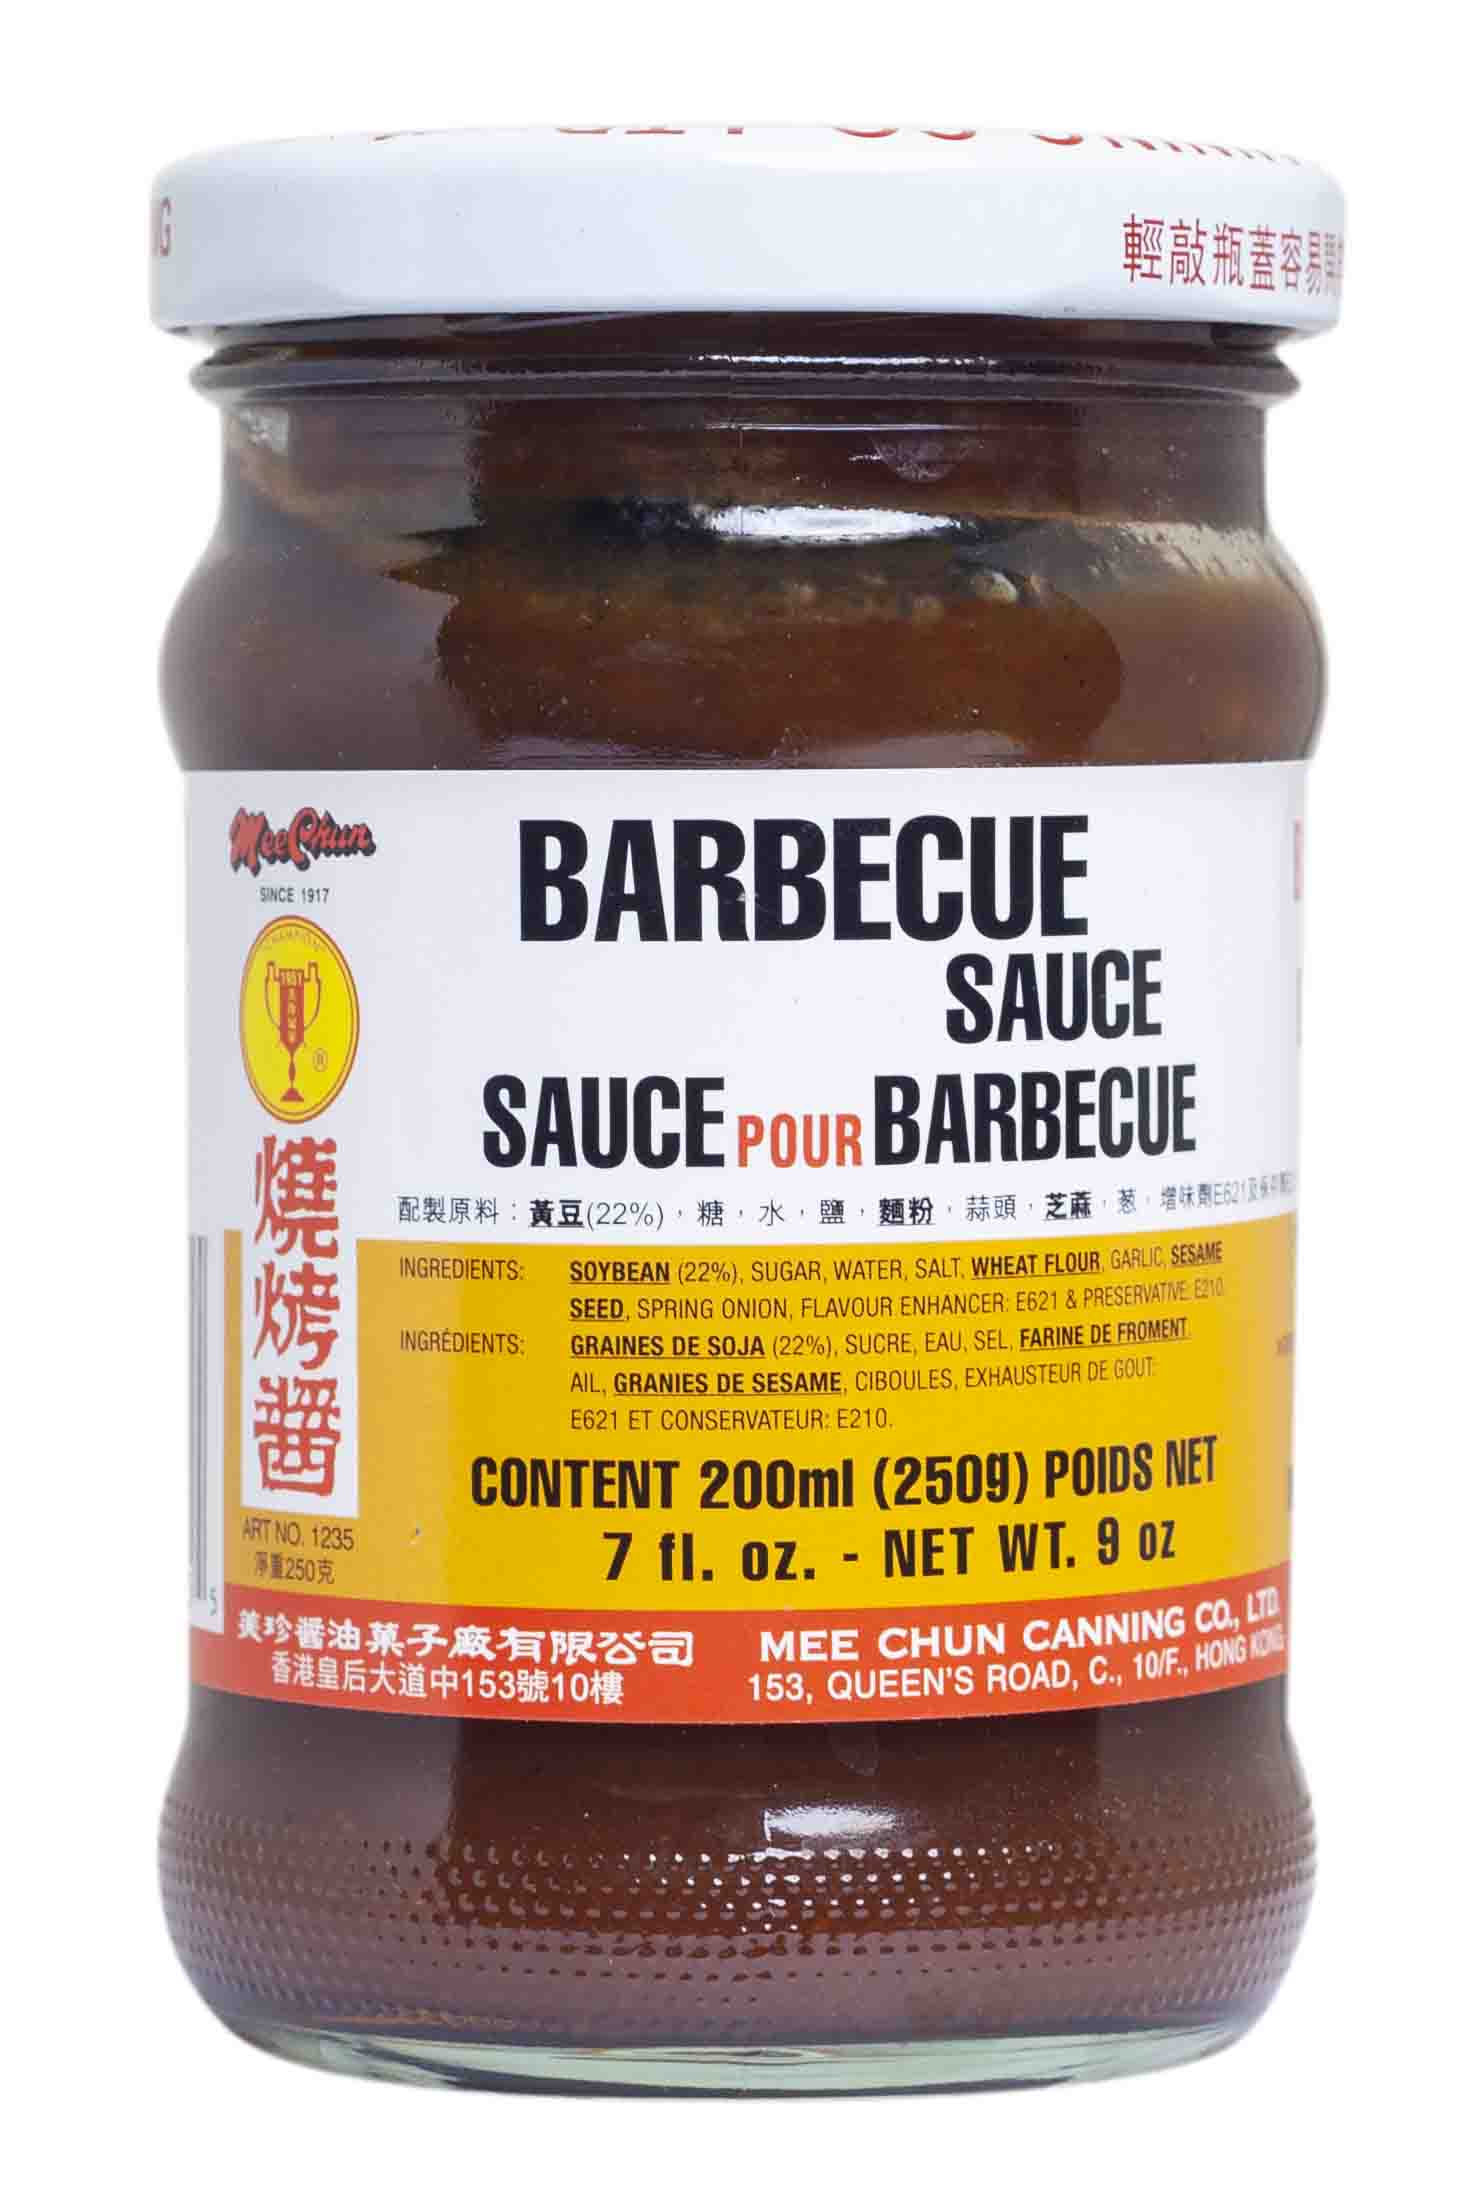 Barbecue saus